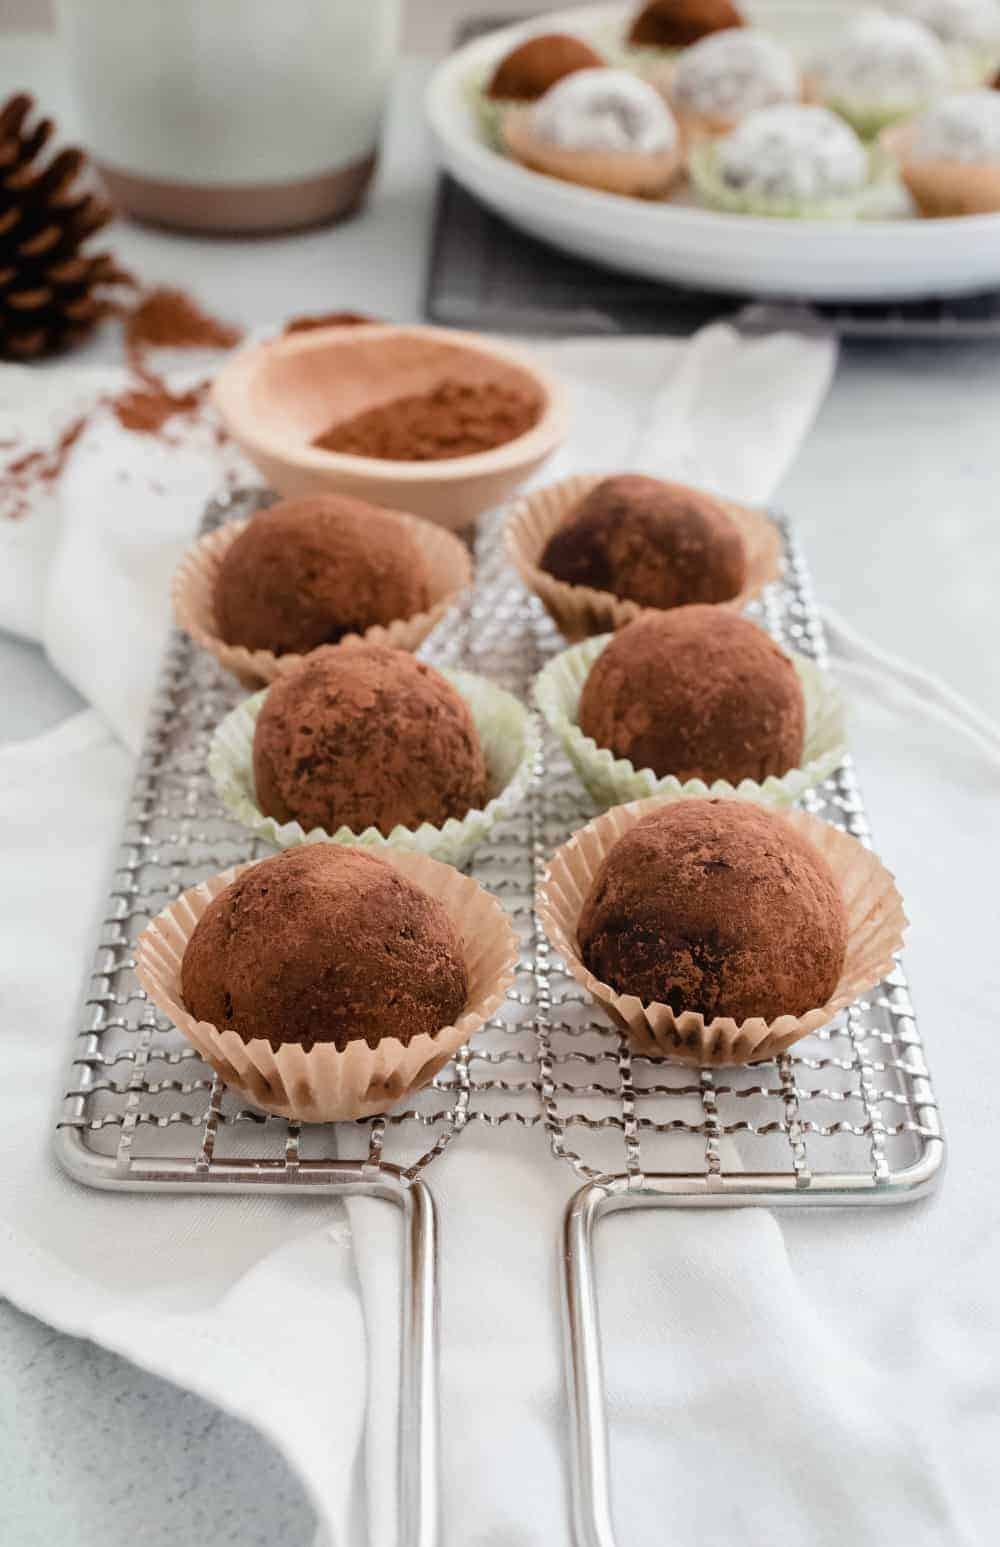 Side view of rum balls rolled in cocoa powder and arranged in mini baking cups